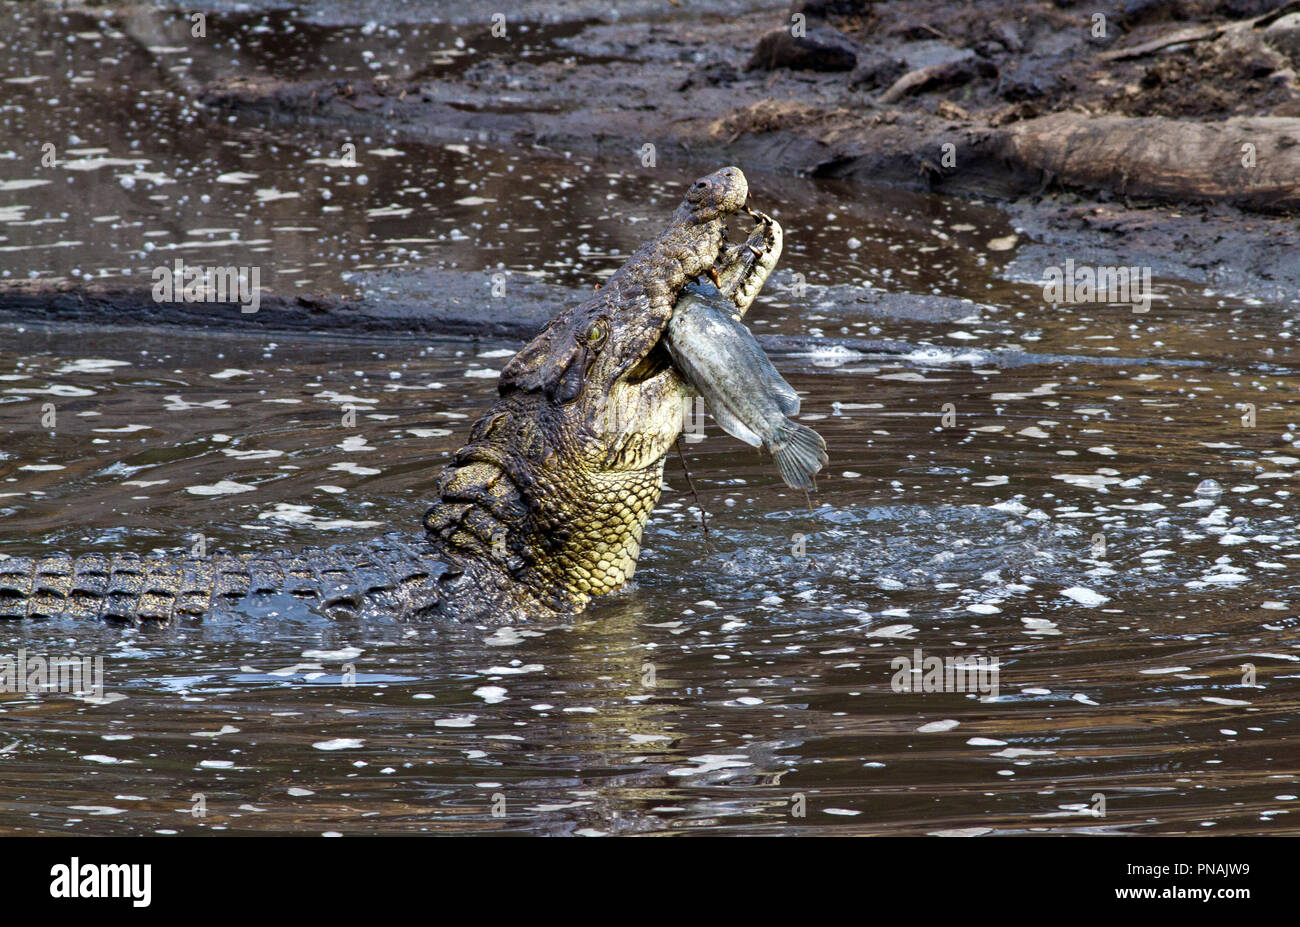 Even large crocodiles will feats on fish when the opportunity rises, especially as the pools shrink in the dry season and large catfish are trapped. - Stock Image